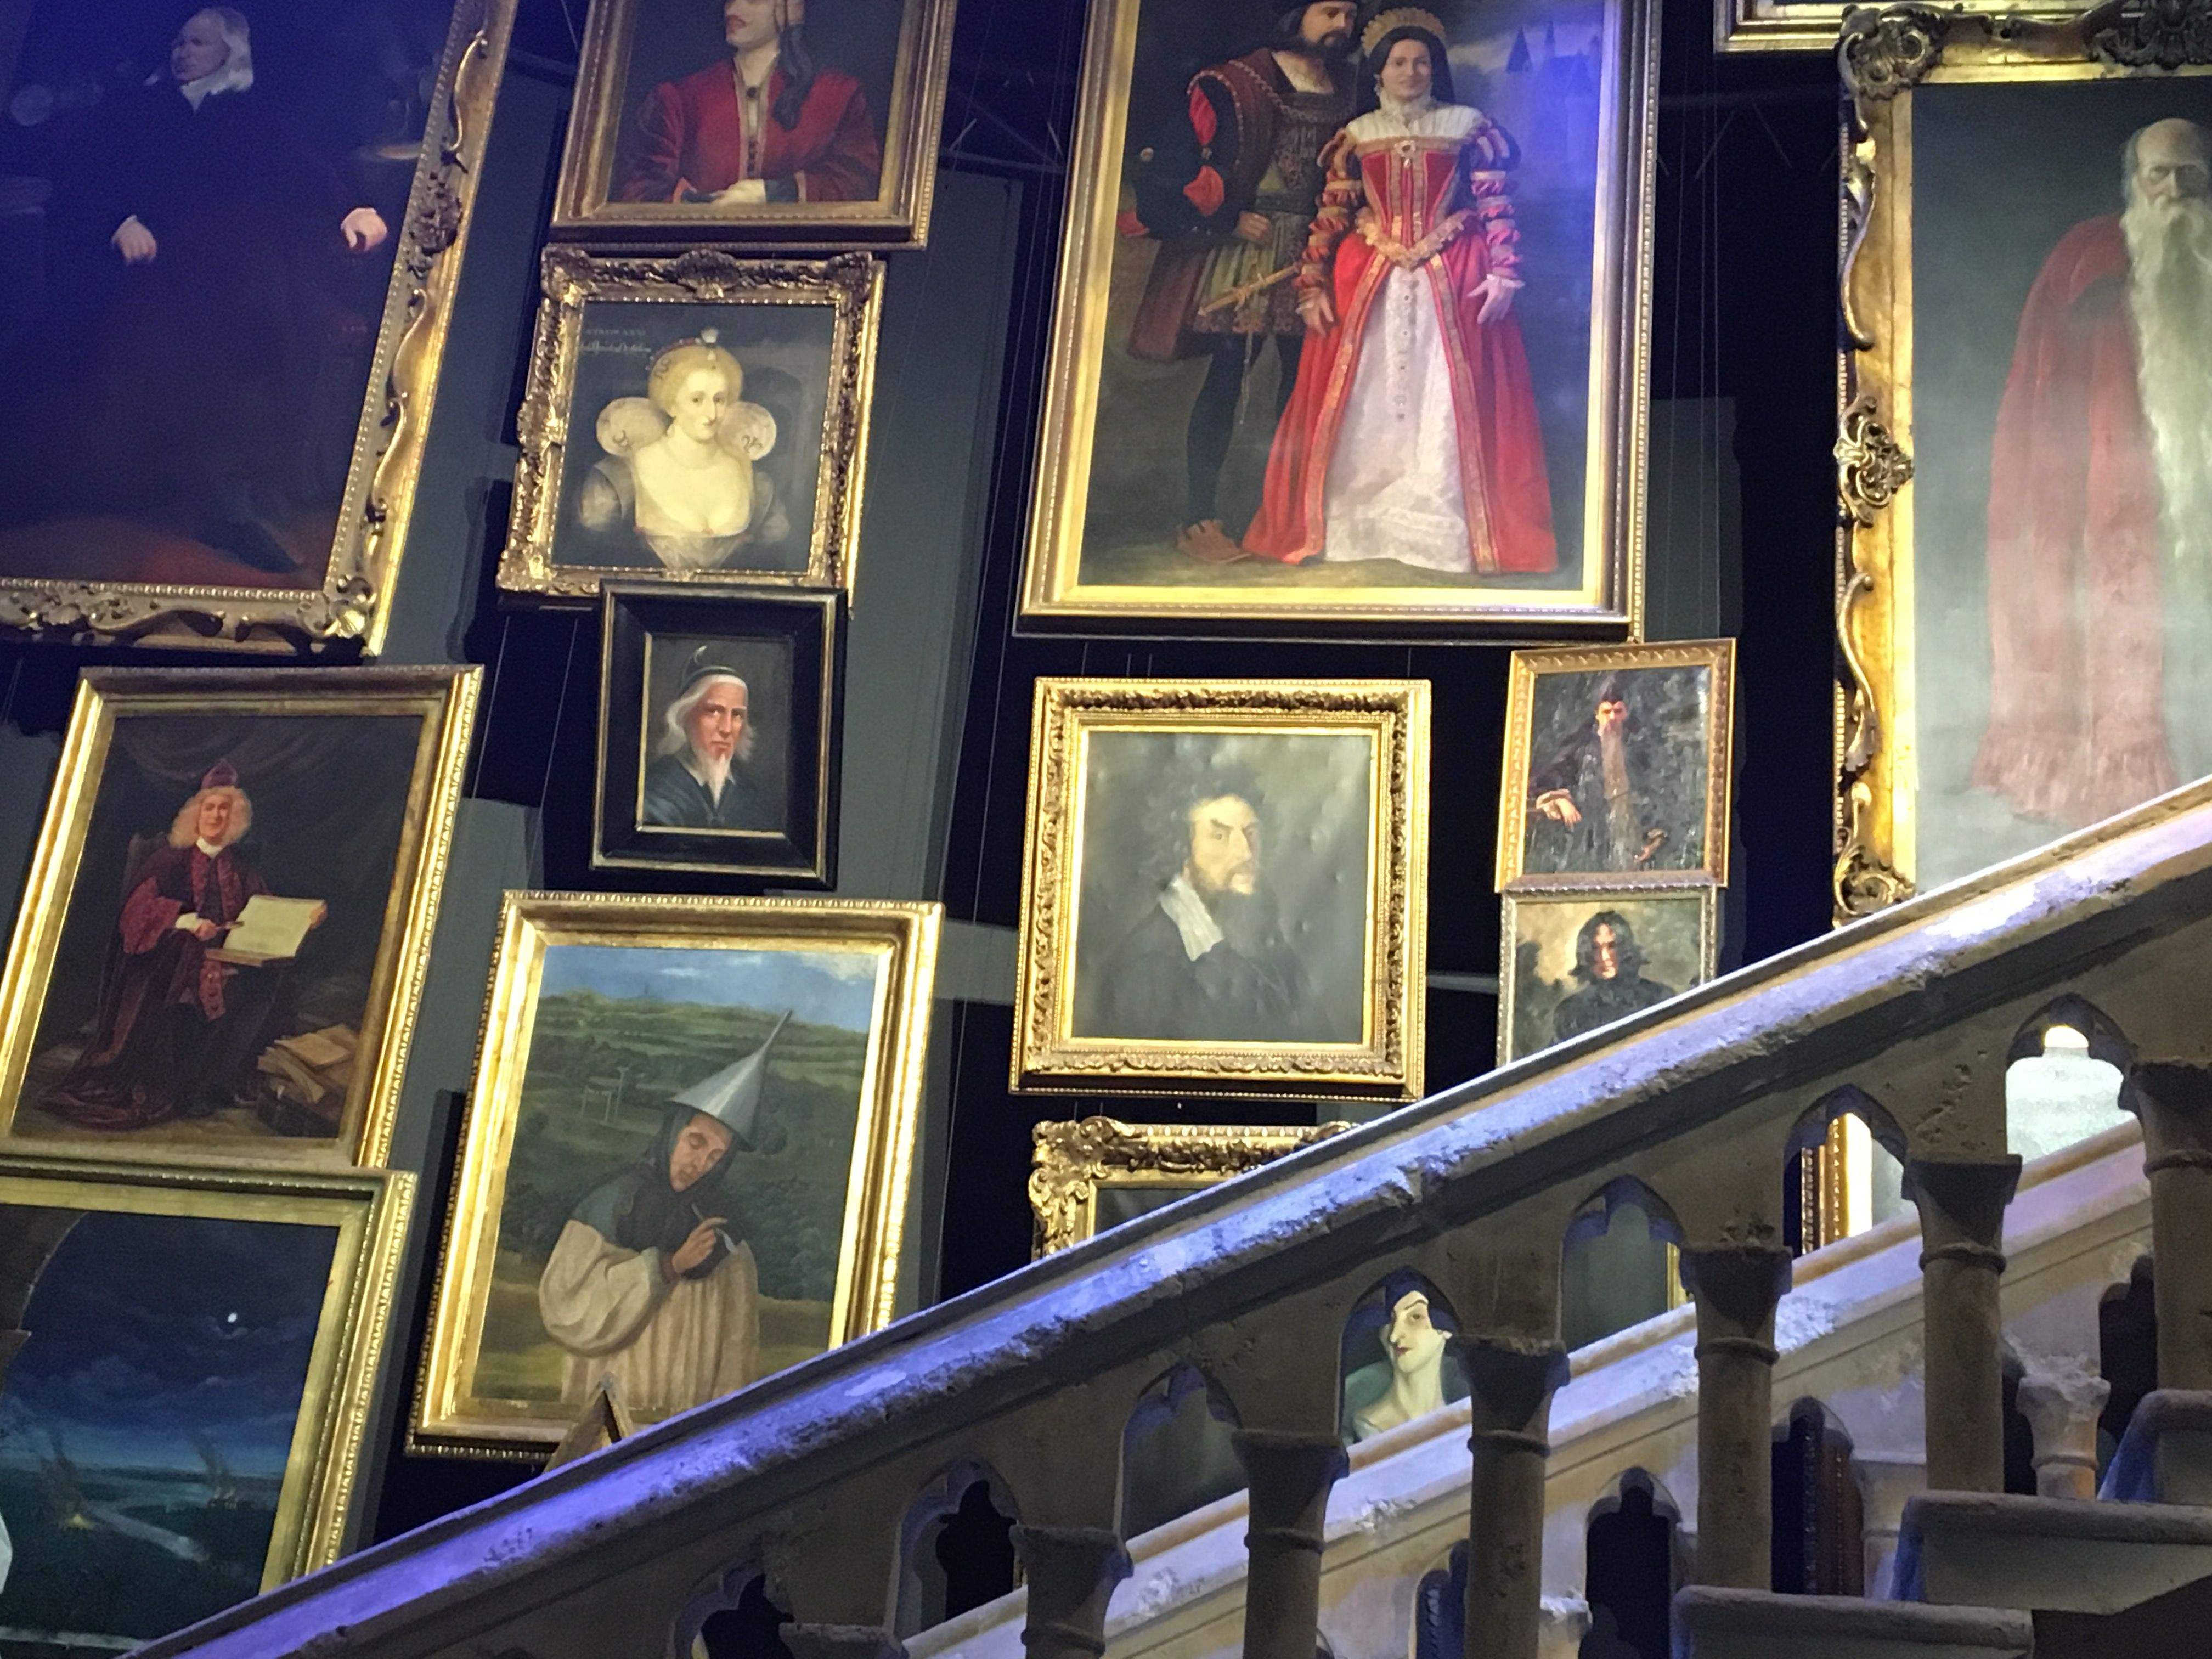 Some of the magical hogwarts portraits Gallery wall